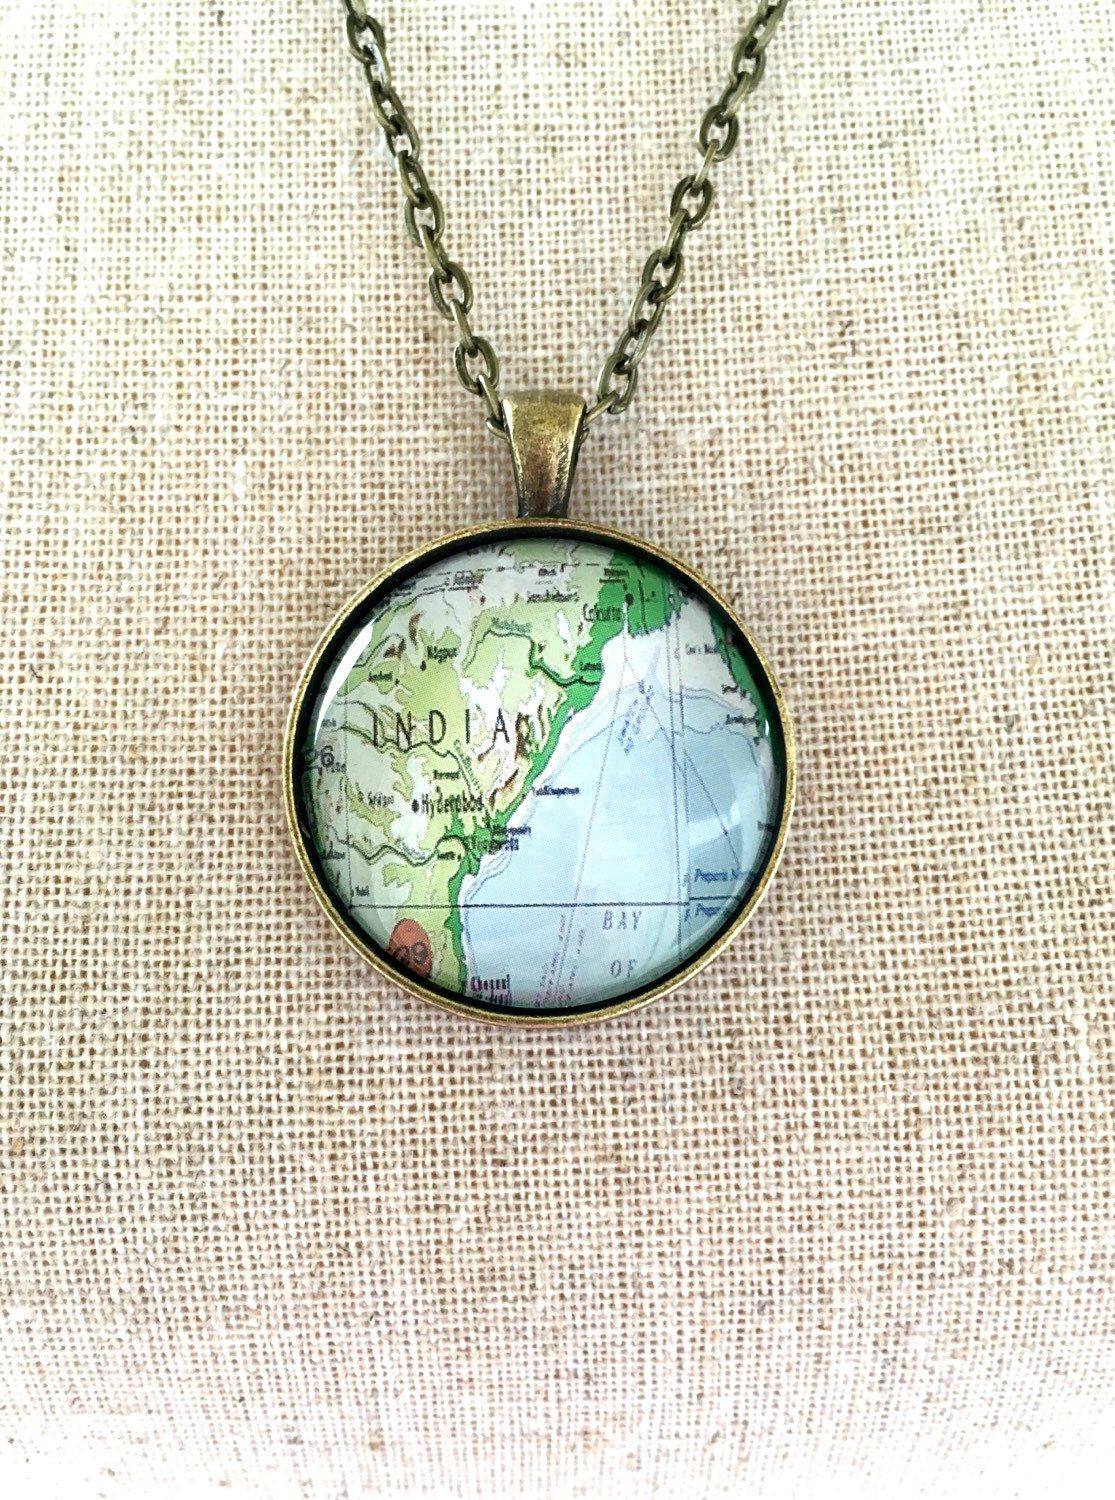 India travel world map necklace wanderlust unique gift for traveler india travel world map necklace wanderlust unique gift for traveler globe fathers day gumiabroncs